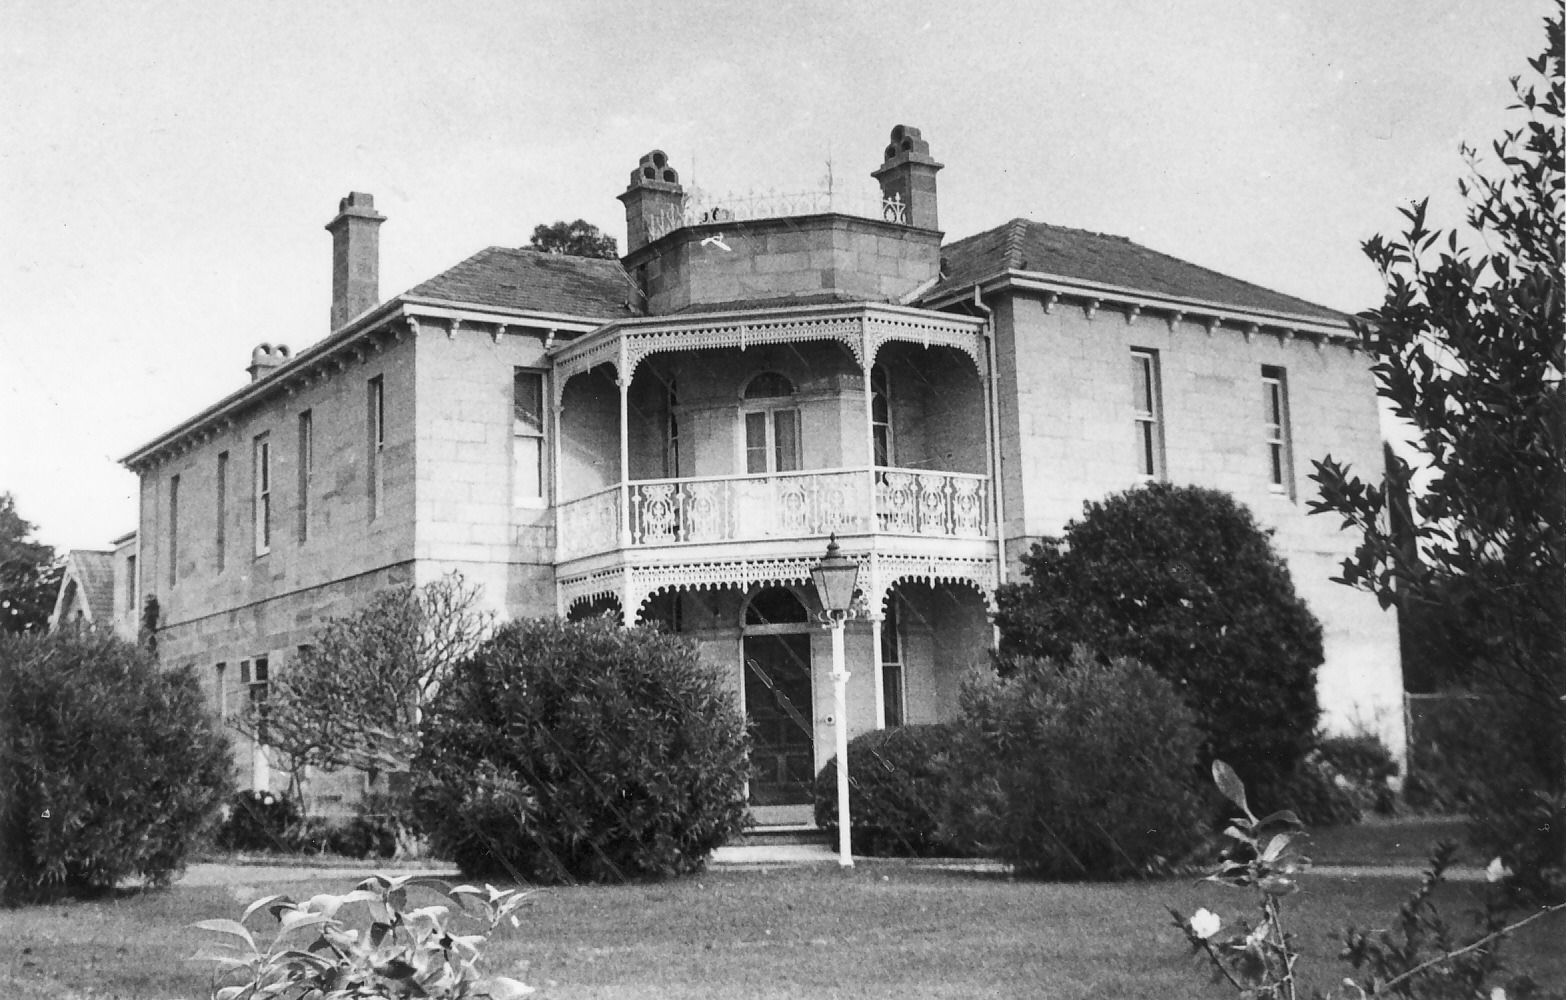 Self guided heritage walks - The home hunter ...